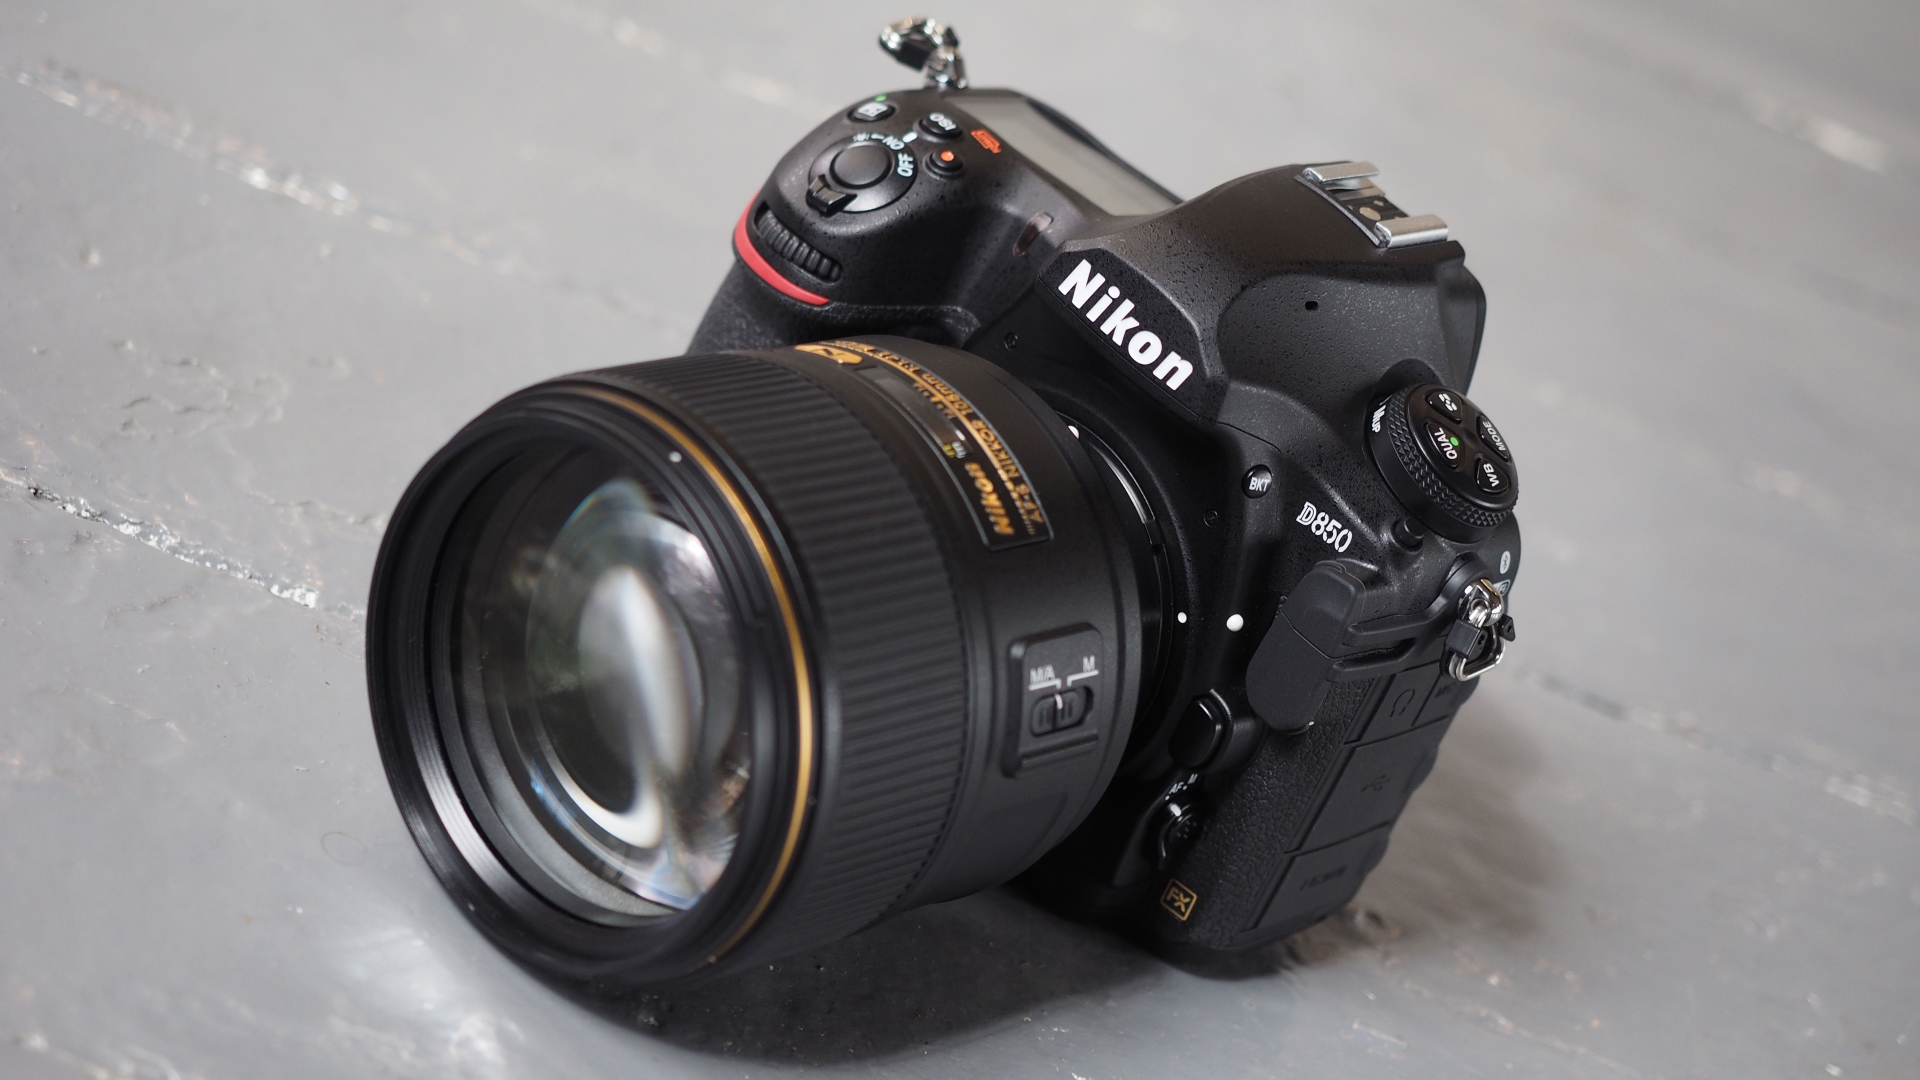 The best Nikon D850 deals in 2018: take your photography up a level